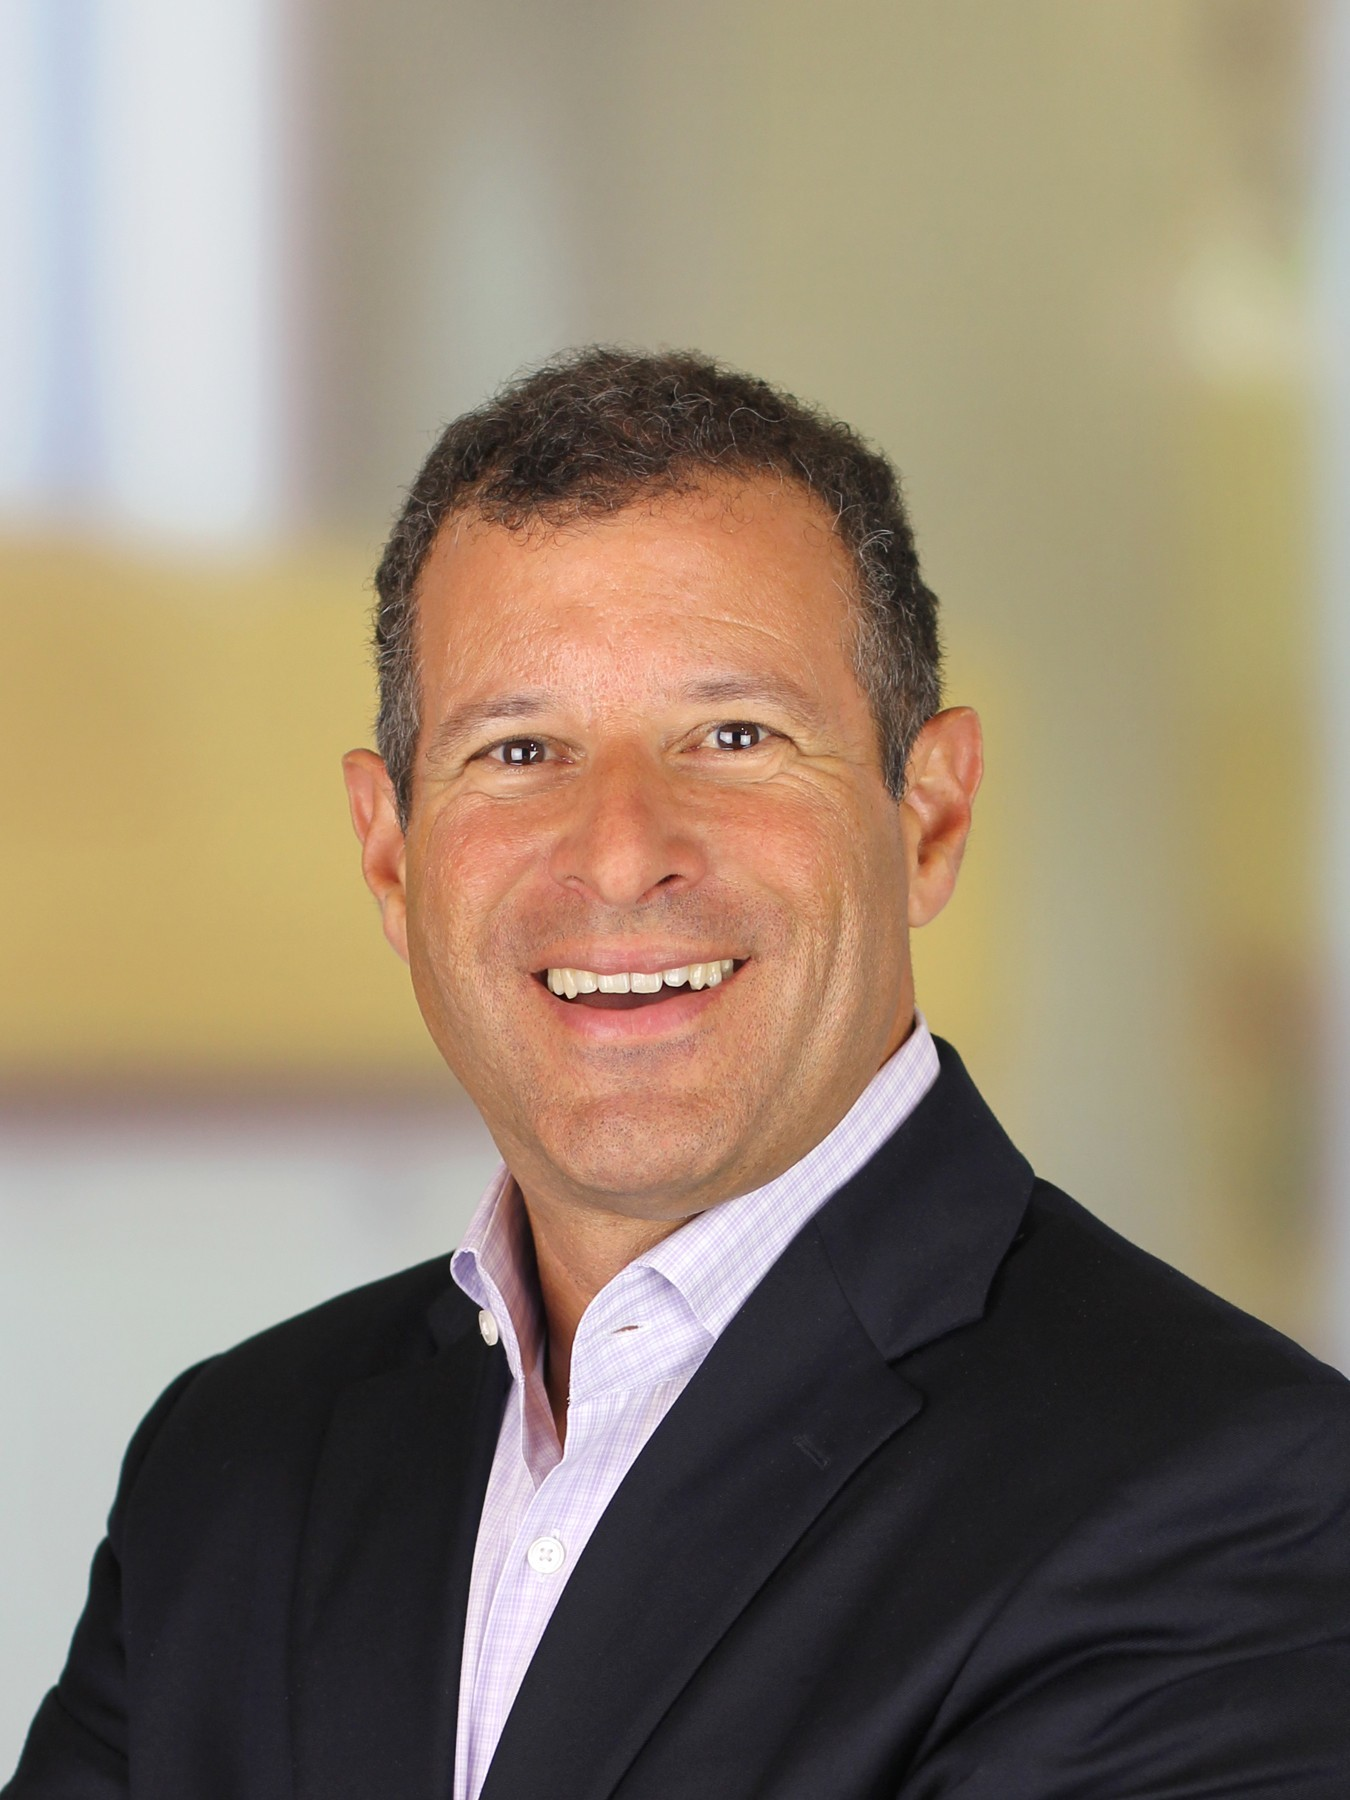 Joe Muscat, Managing Partner at EY's Redwood Shores office. (Photo: Business Wire)